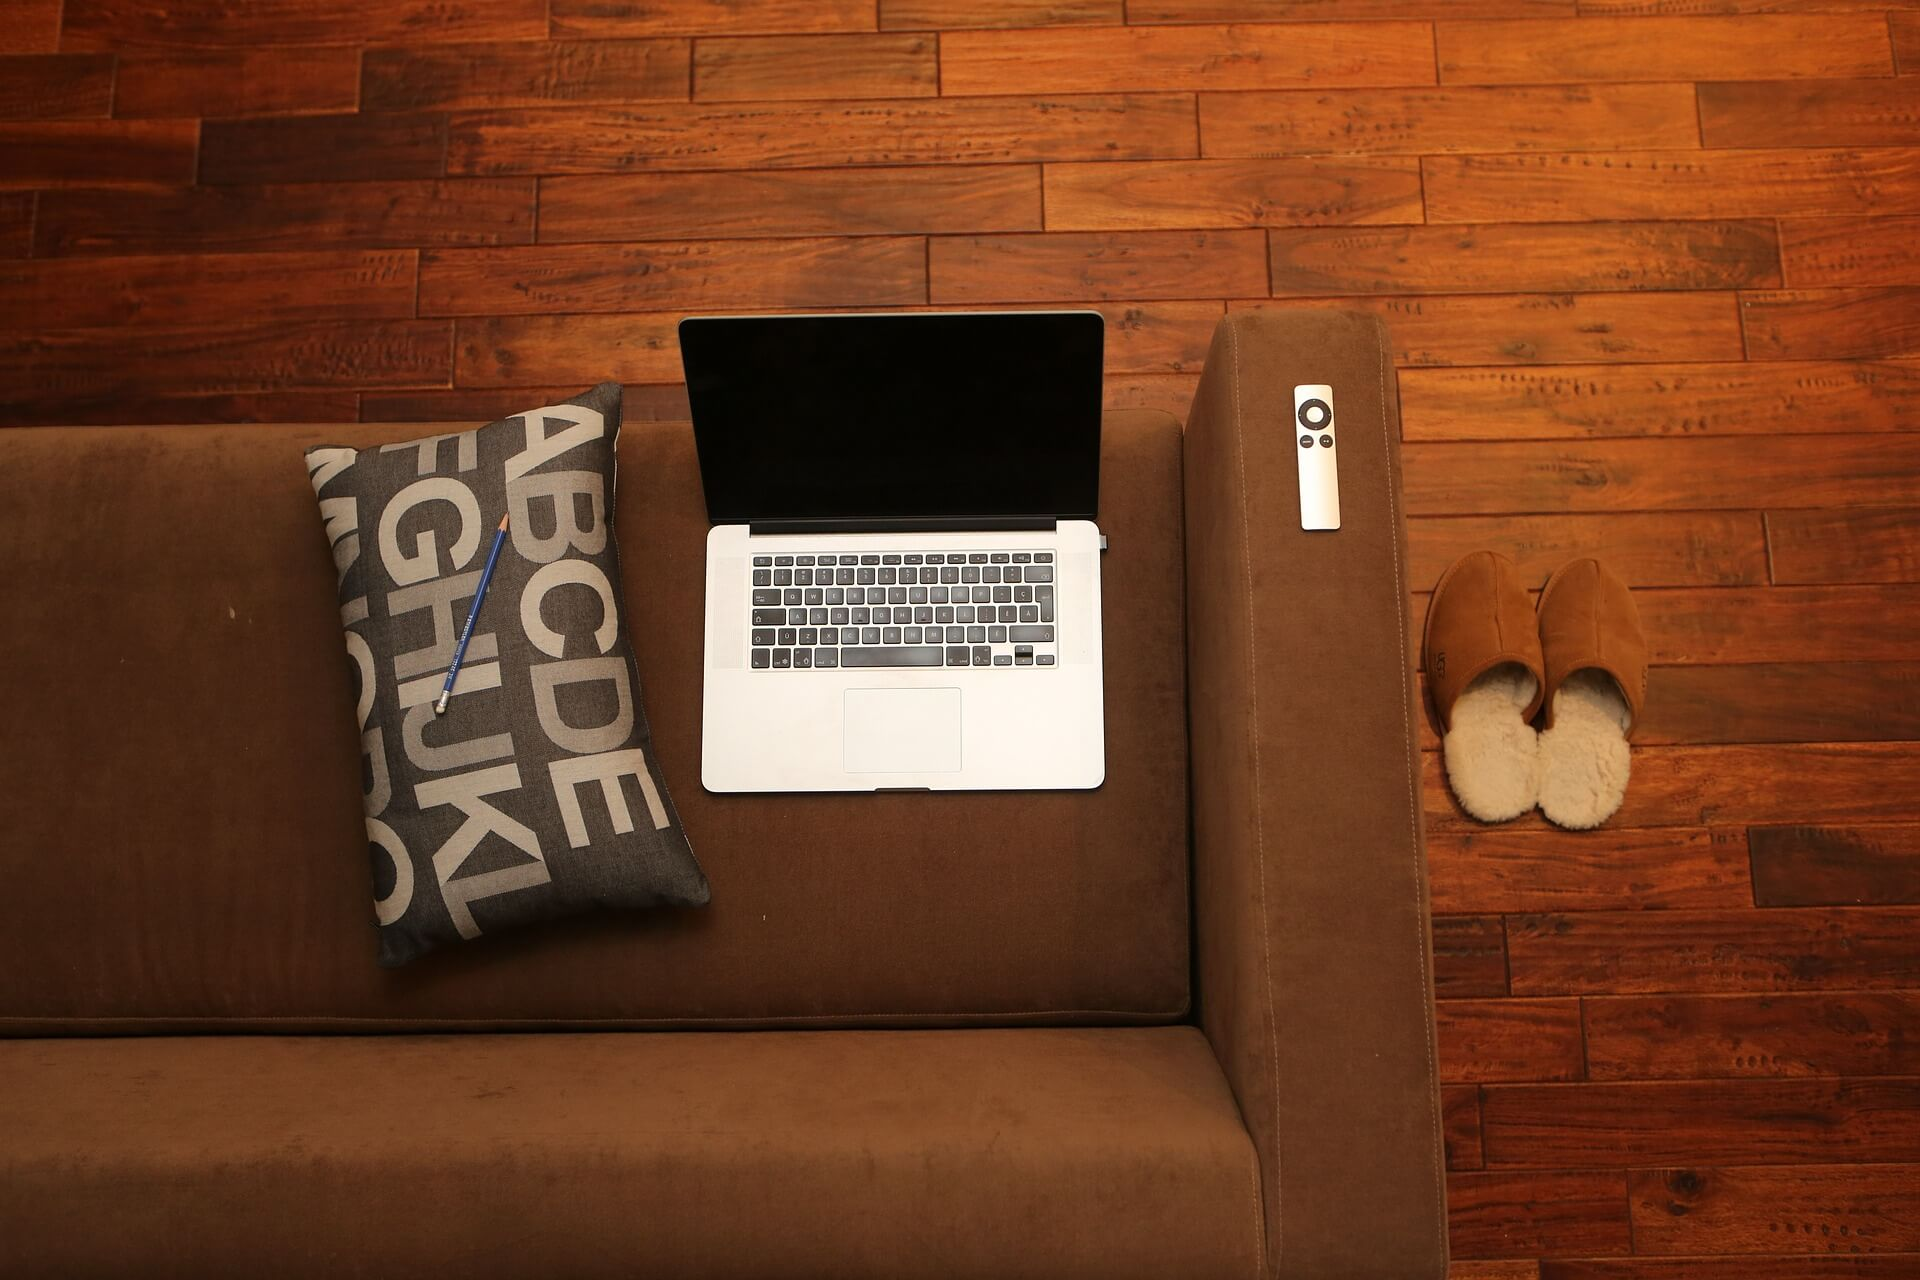 Working from home: laptop on couch